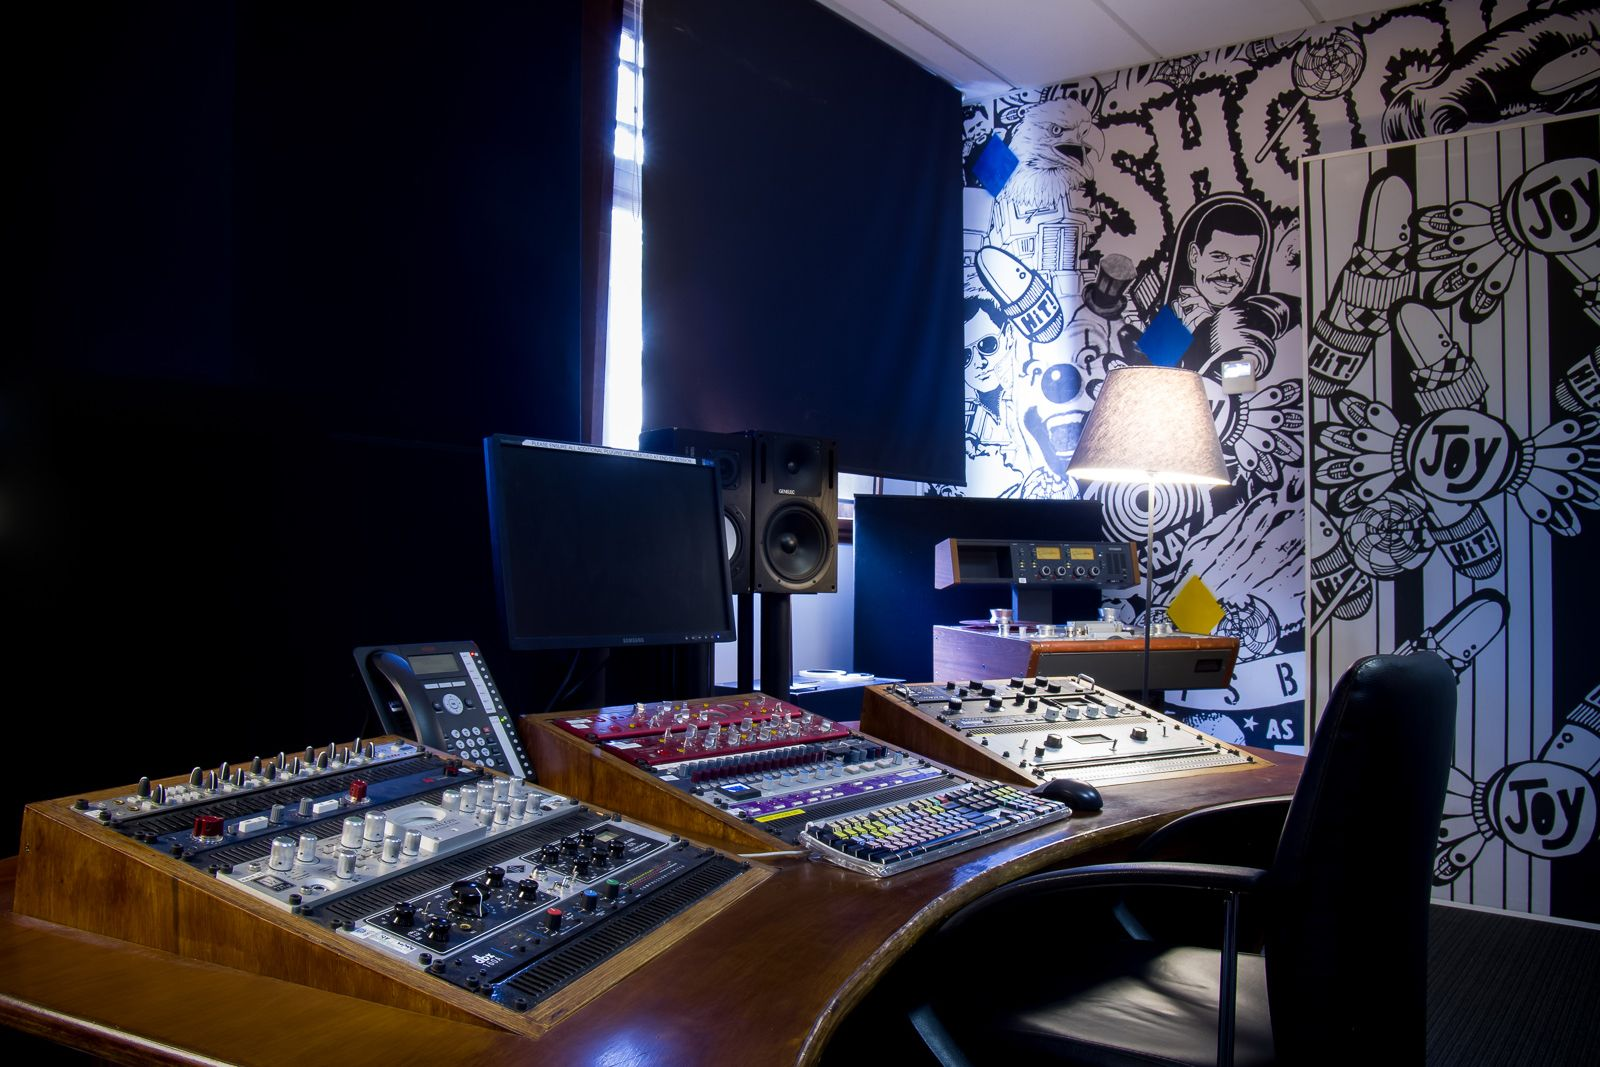 Studio 6 | Studios 301 Sydney is the largest of the 301 group of studios, comprising of two large-format recording studios, 11 production studios, three mastering rooms and two workshops, with a roster of engineers and producers working in most music genres.